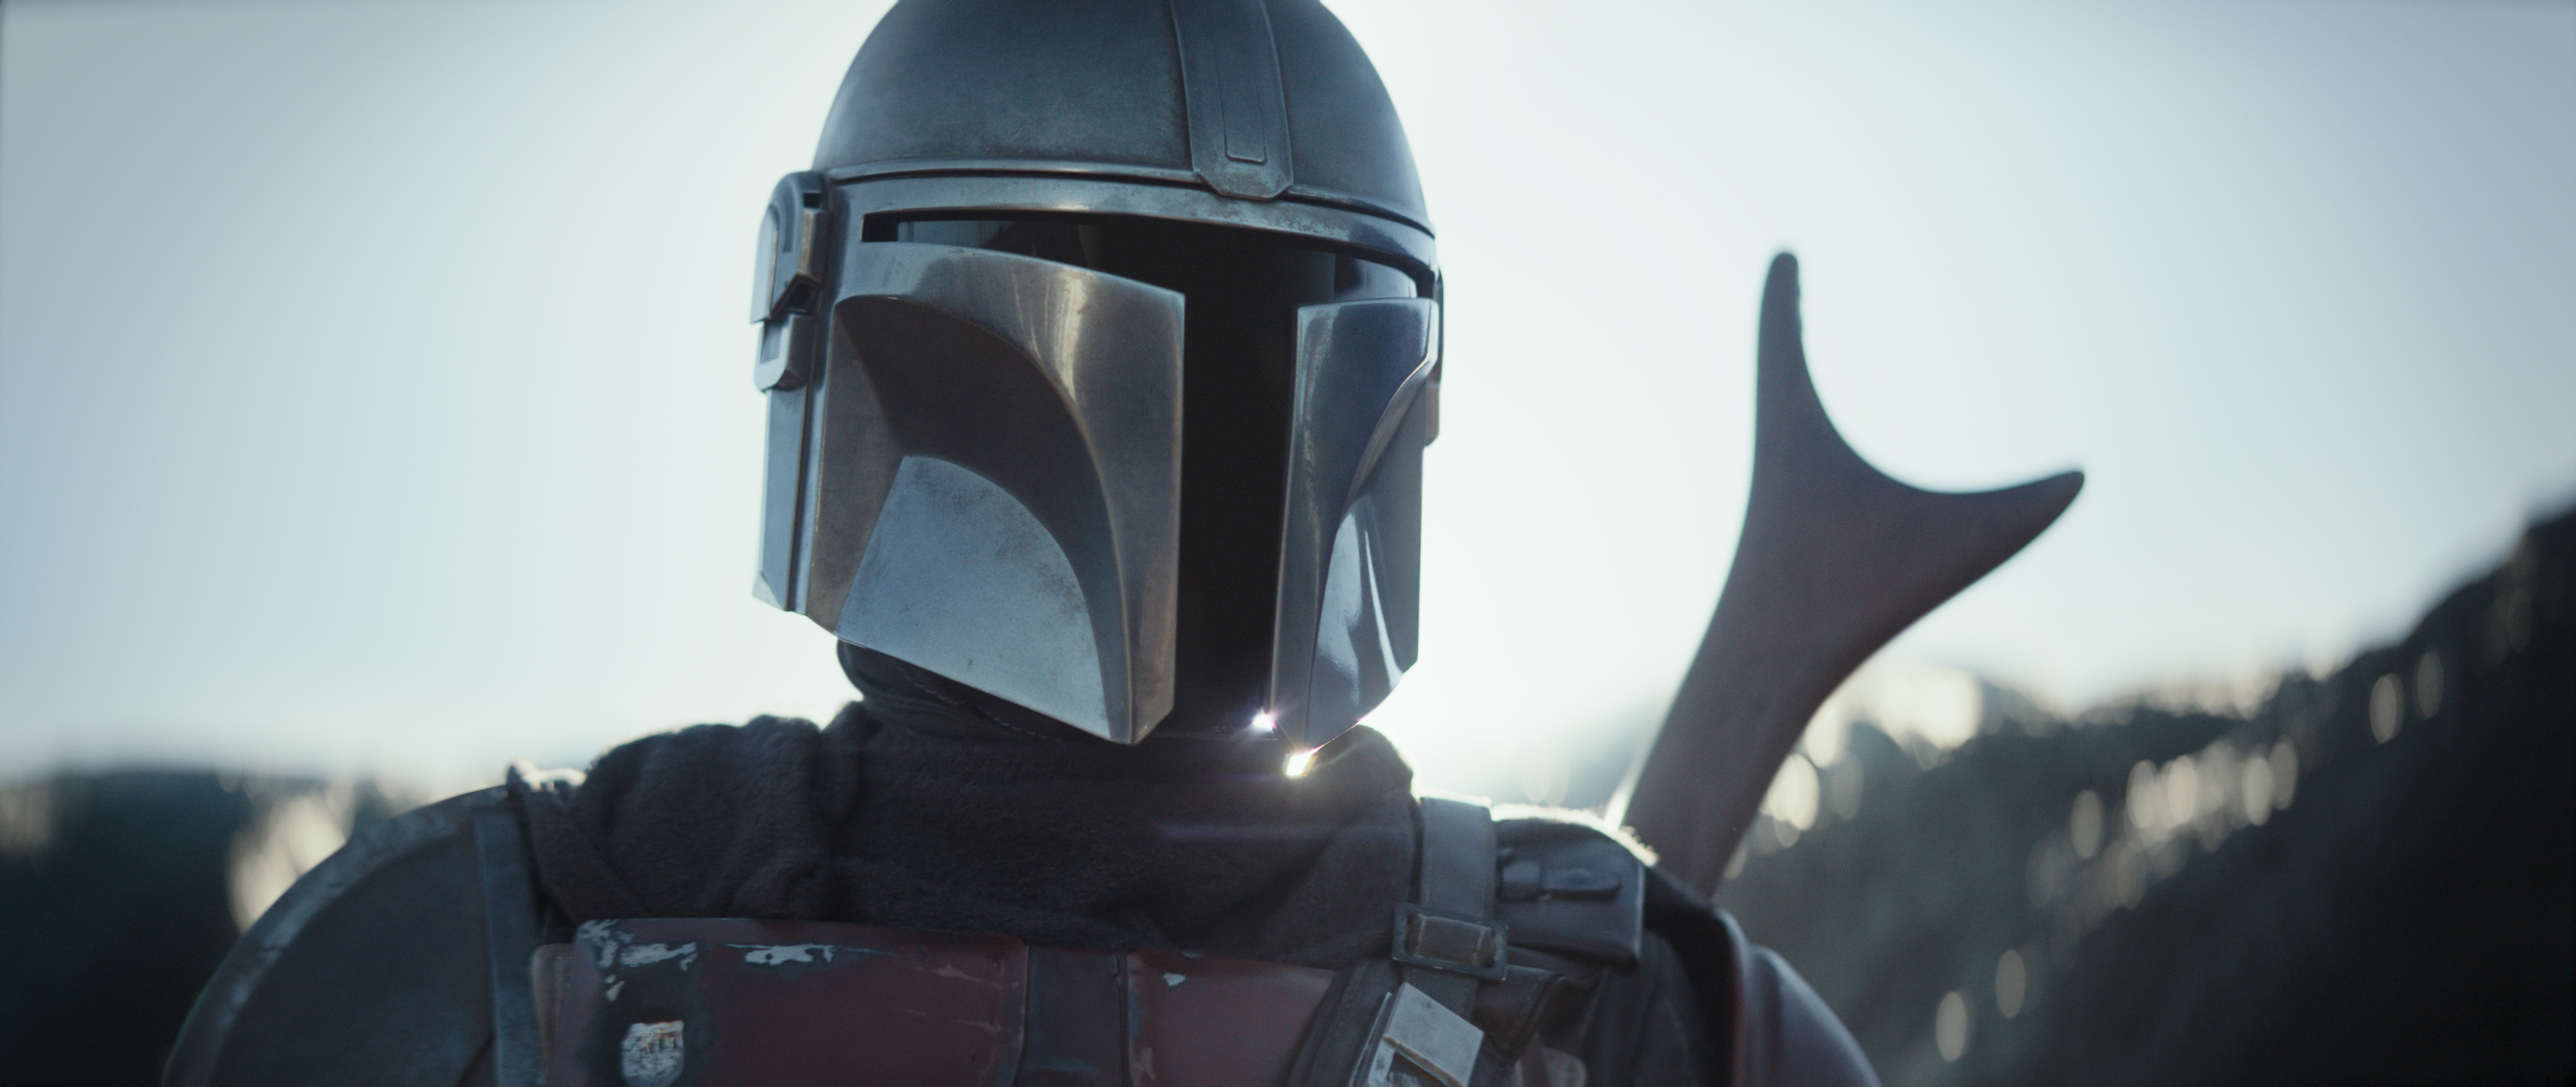 How to watch The Mandalorian, for those who think it's a new Star Wars movie